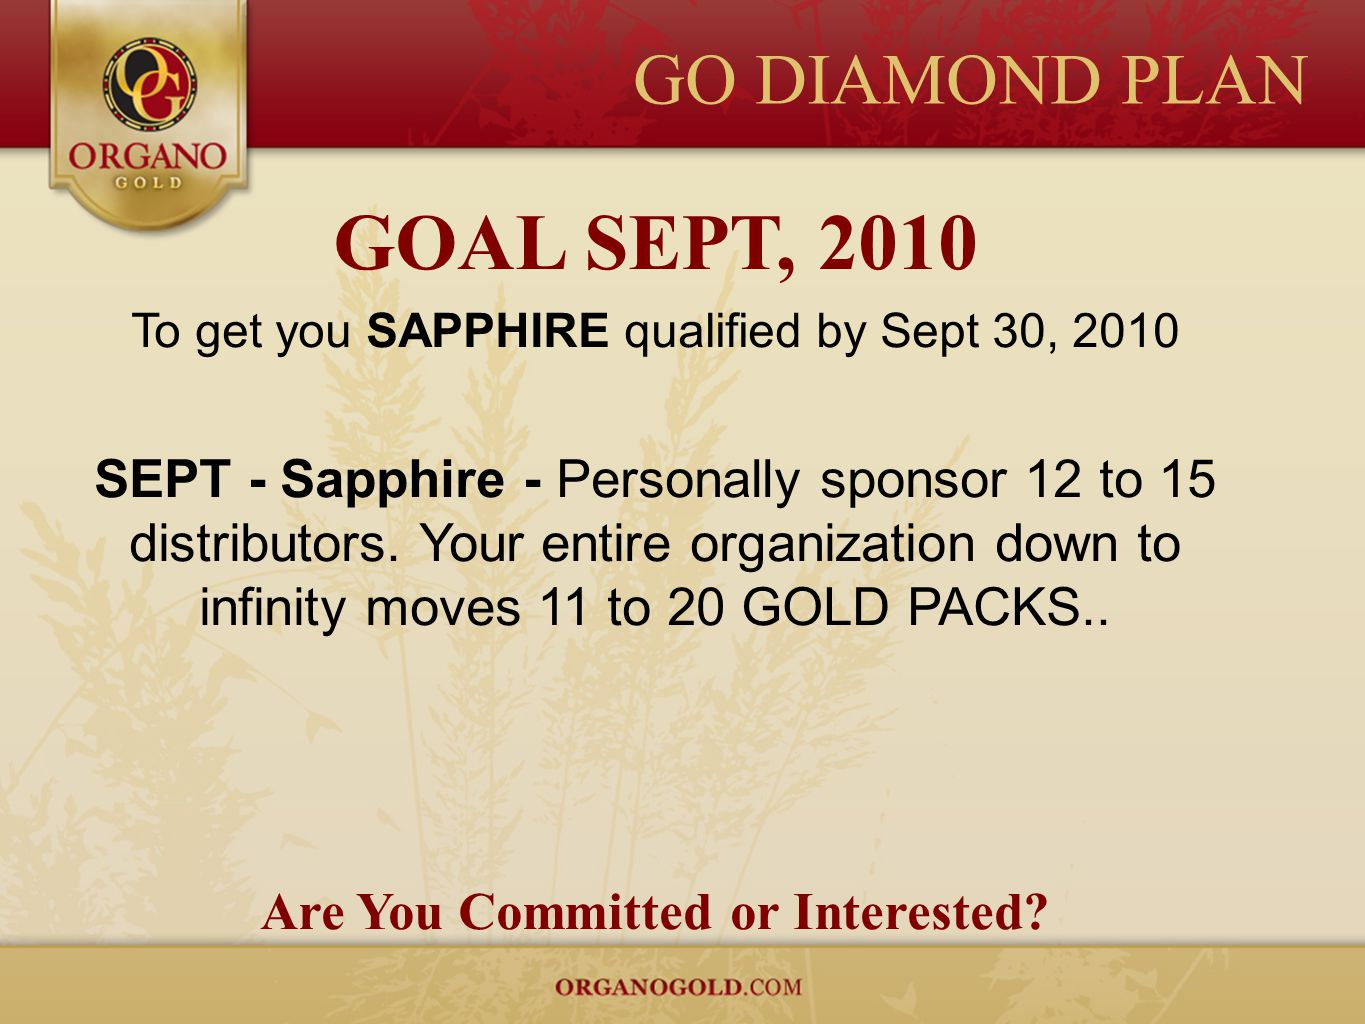 GO DIAMOND PLAN GOAL SEPT, 2010 To get you SAPPHIRE qualified by Sept 30, 2010 SEPT - Sapphire - Personally sponsor 12 to 15 distributors. Your entire